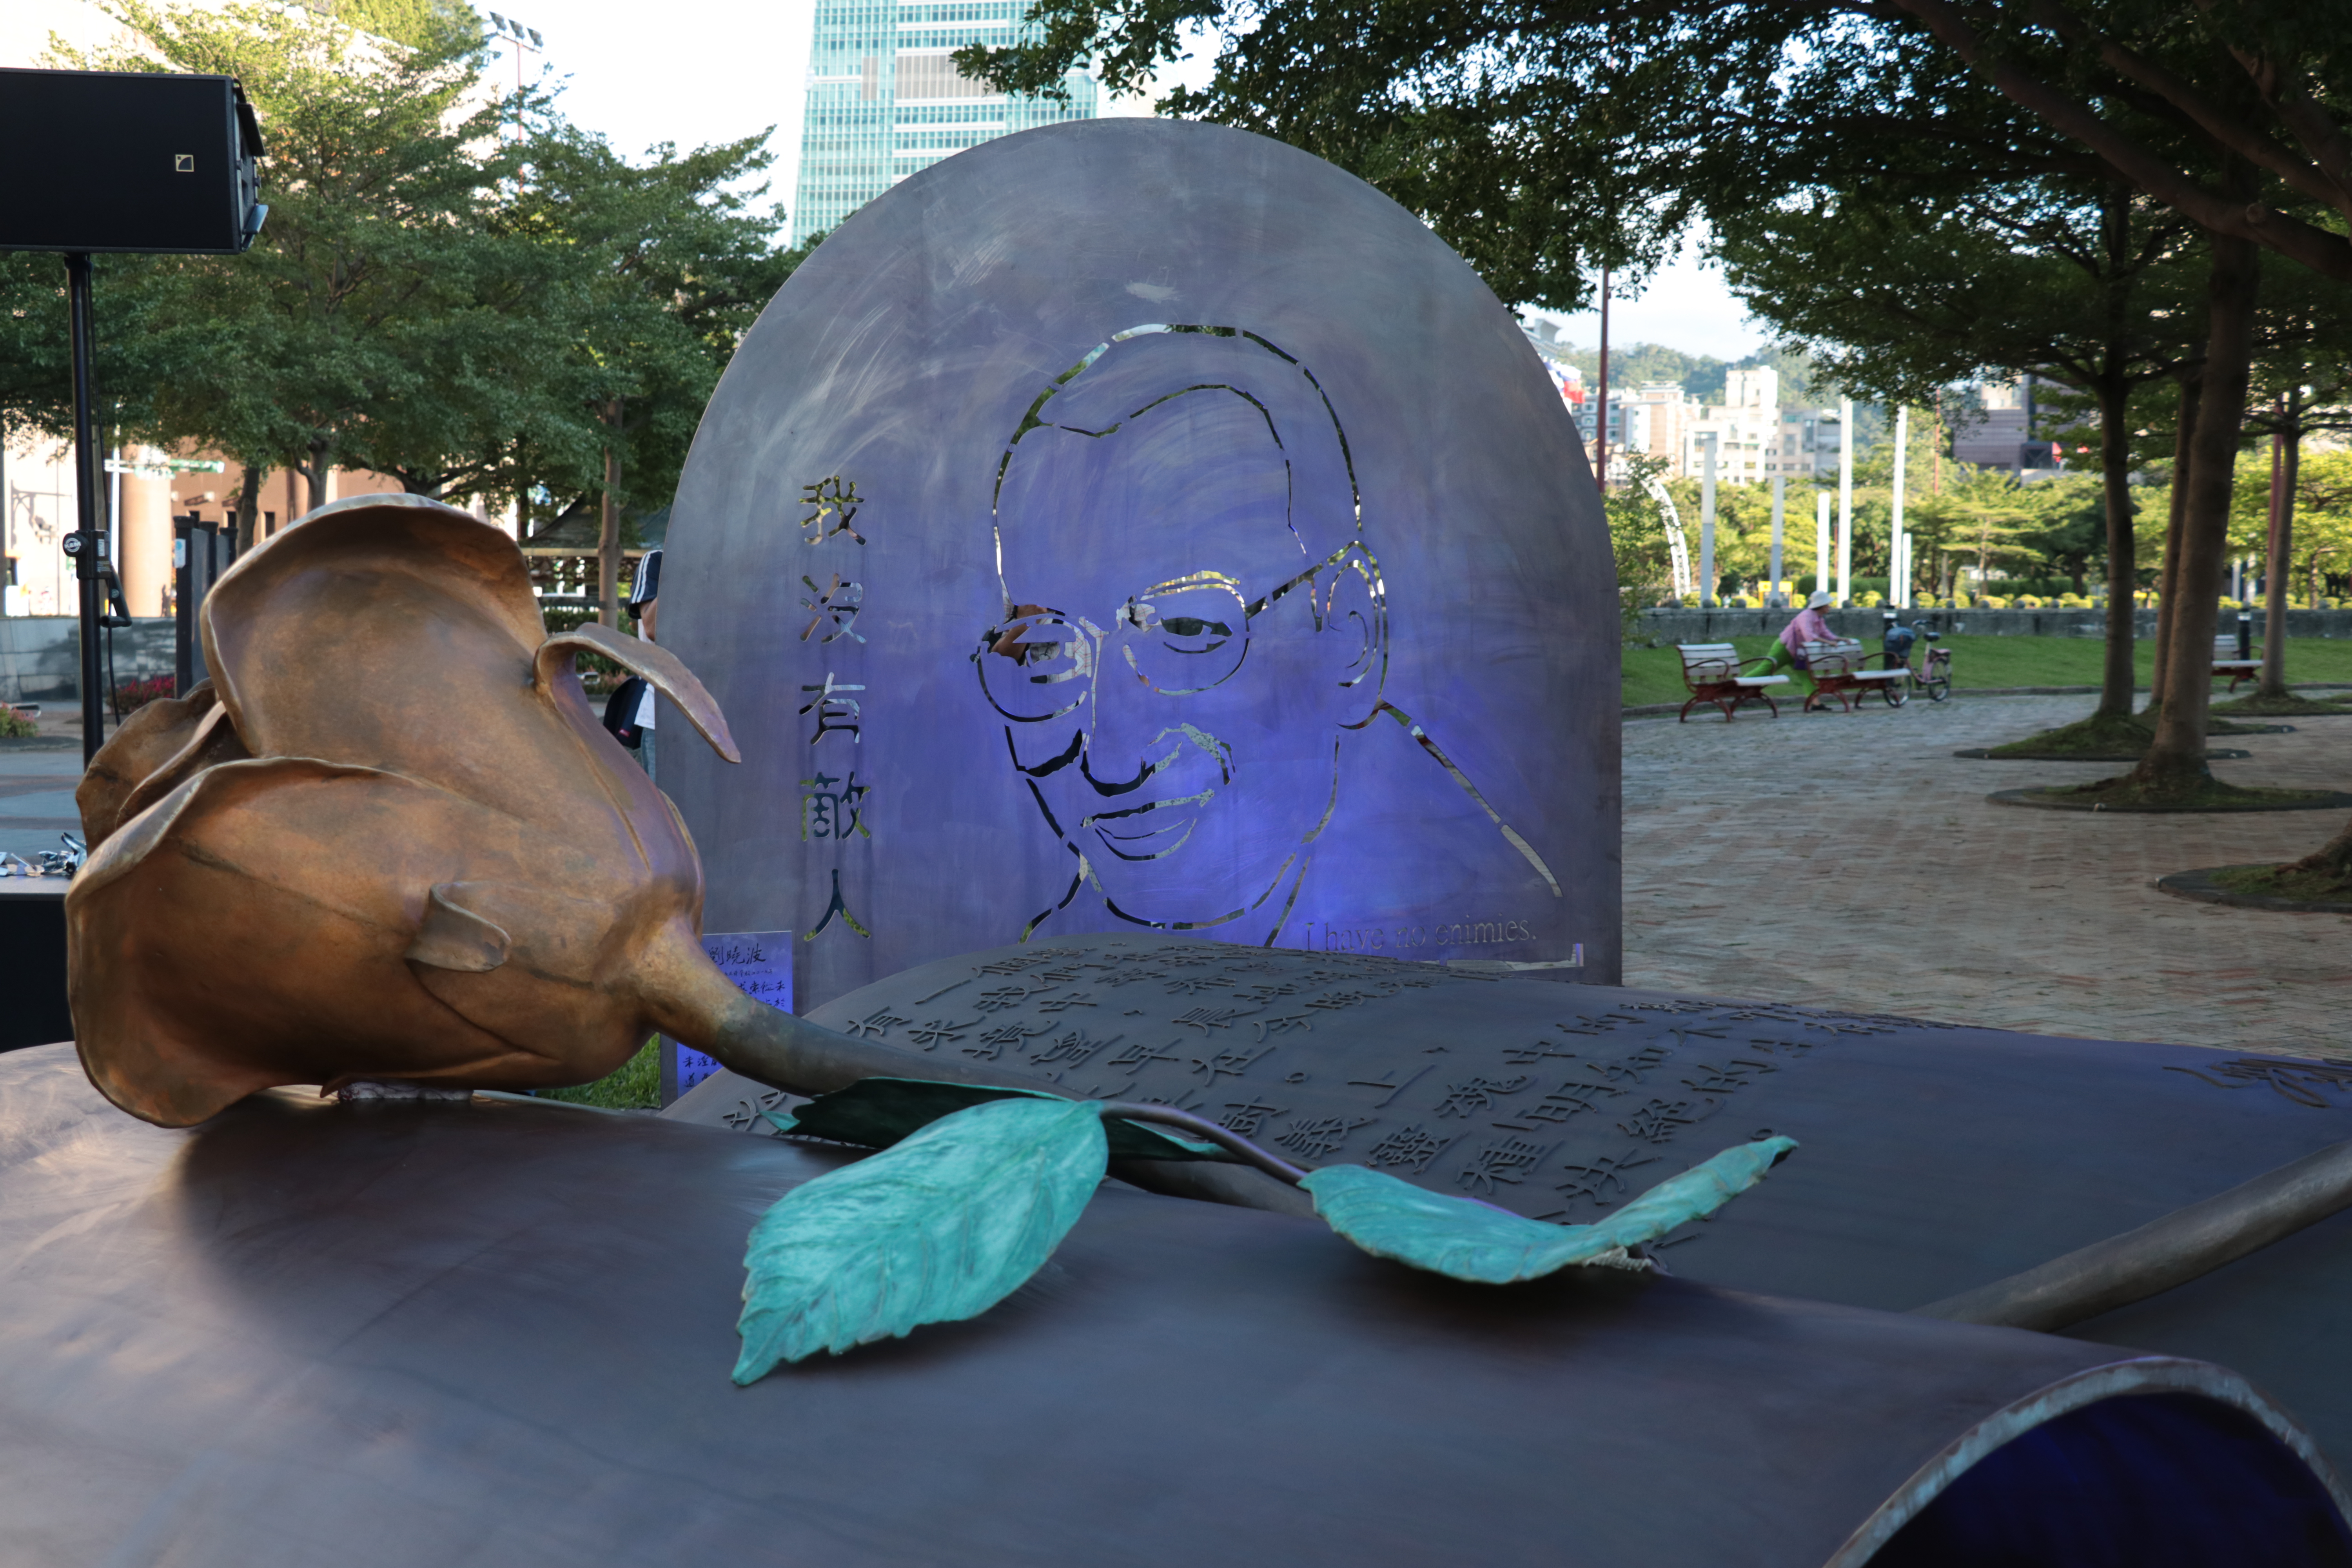 'I Have No Enemies,' a three-part sculpture dedicated to the late Chinese Nobel Peace Prize Laureate Liu Xiaobo, is unveiled in Taipei, Taiwan on the one year anniversary of his death on Jul. 13 2018